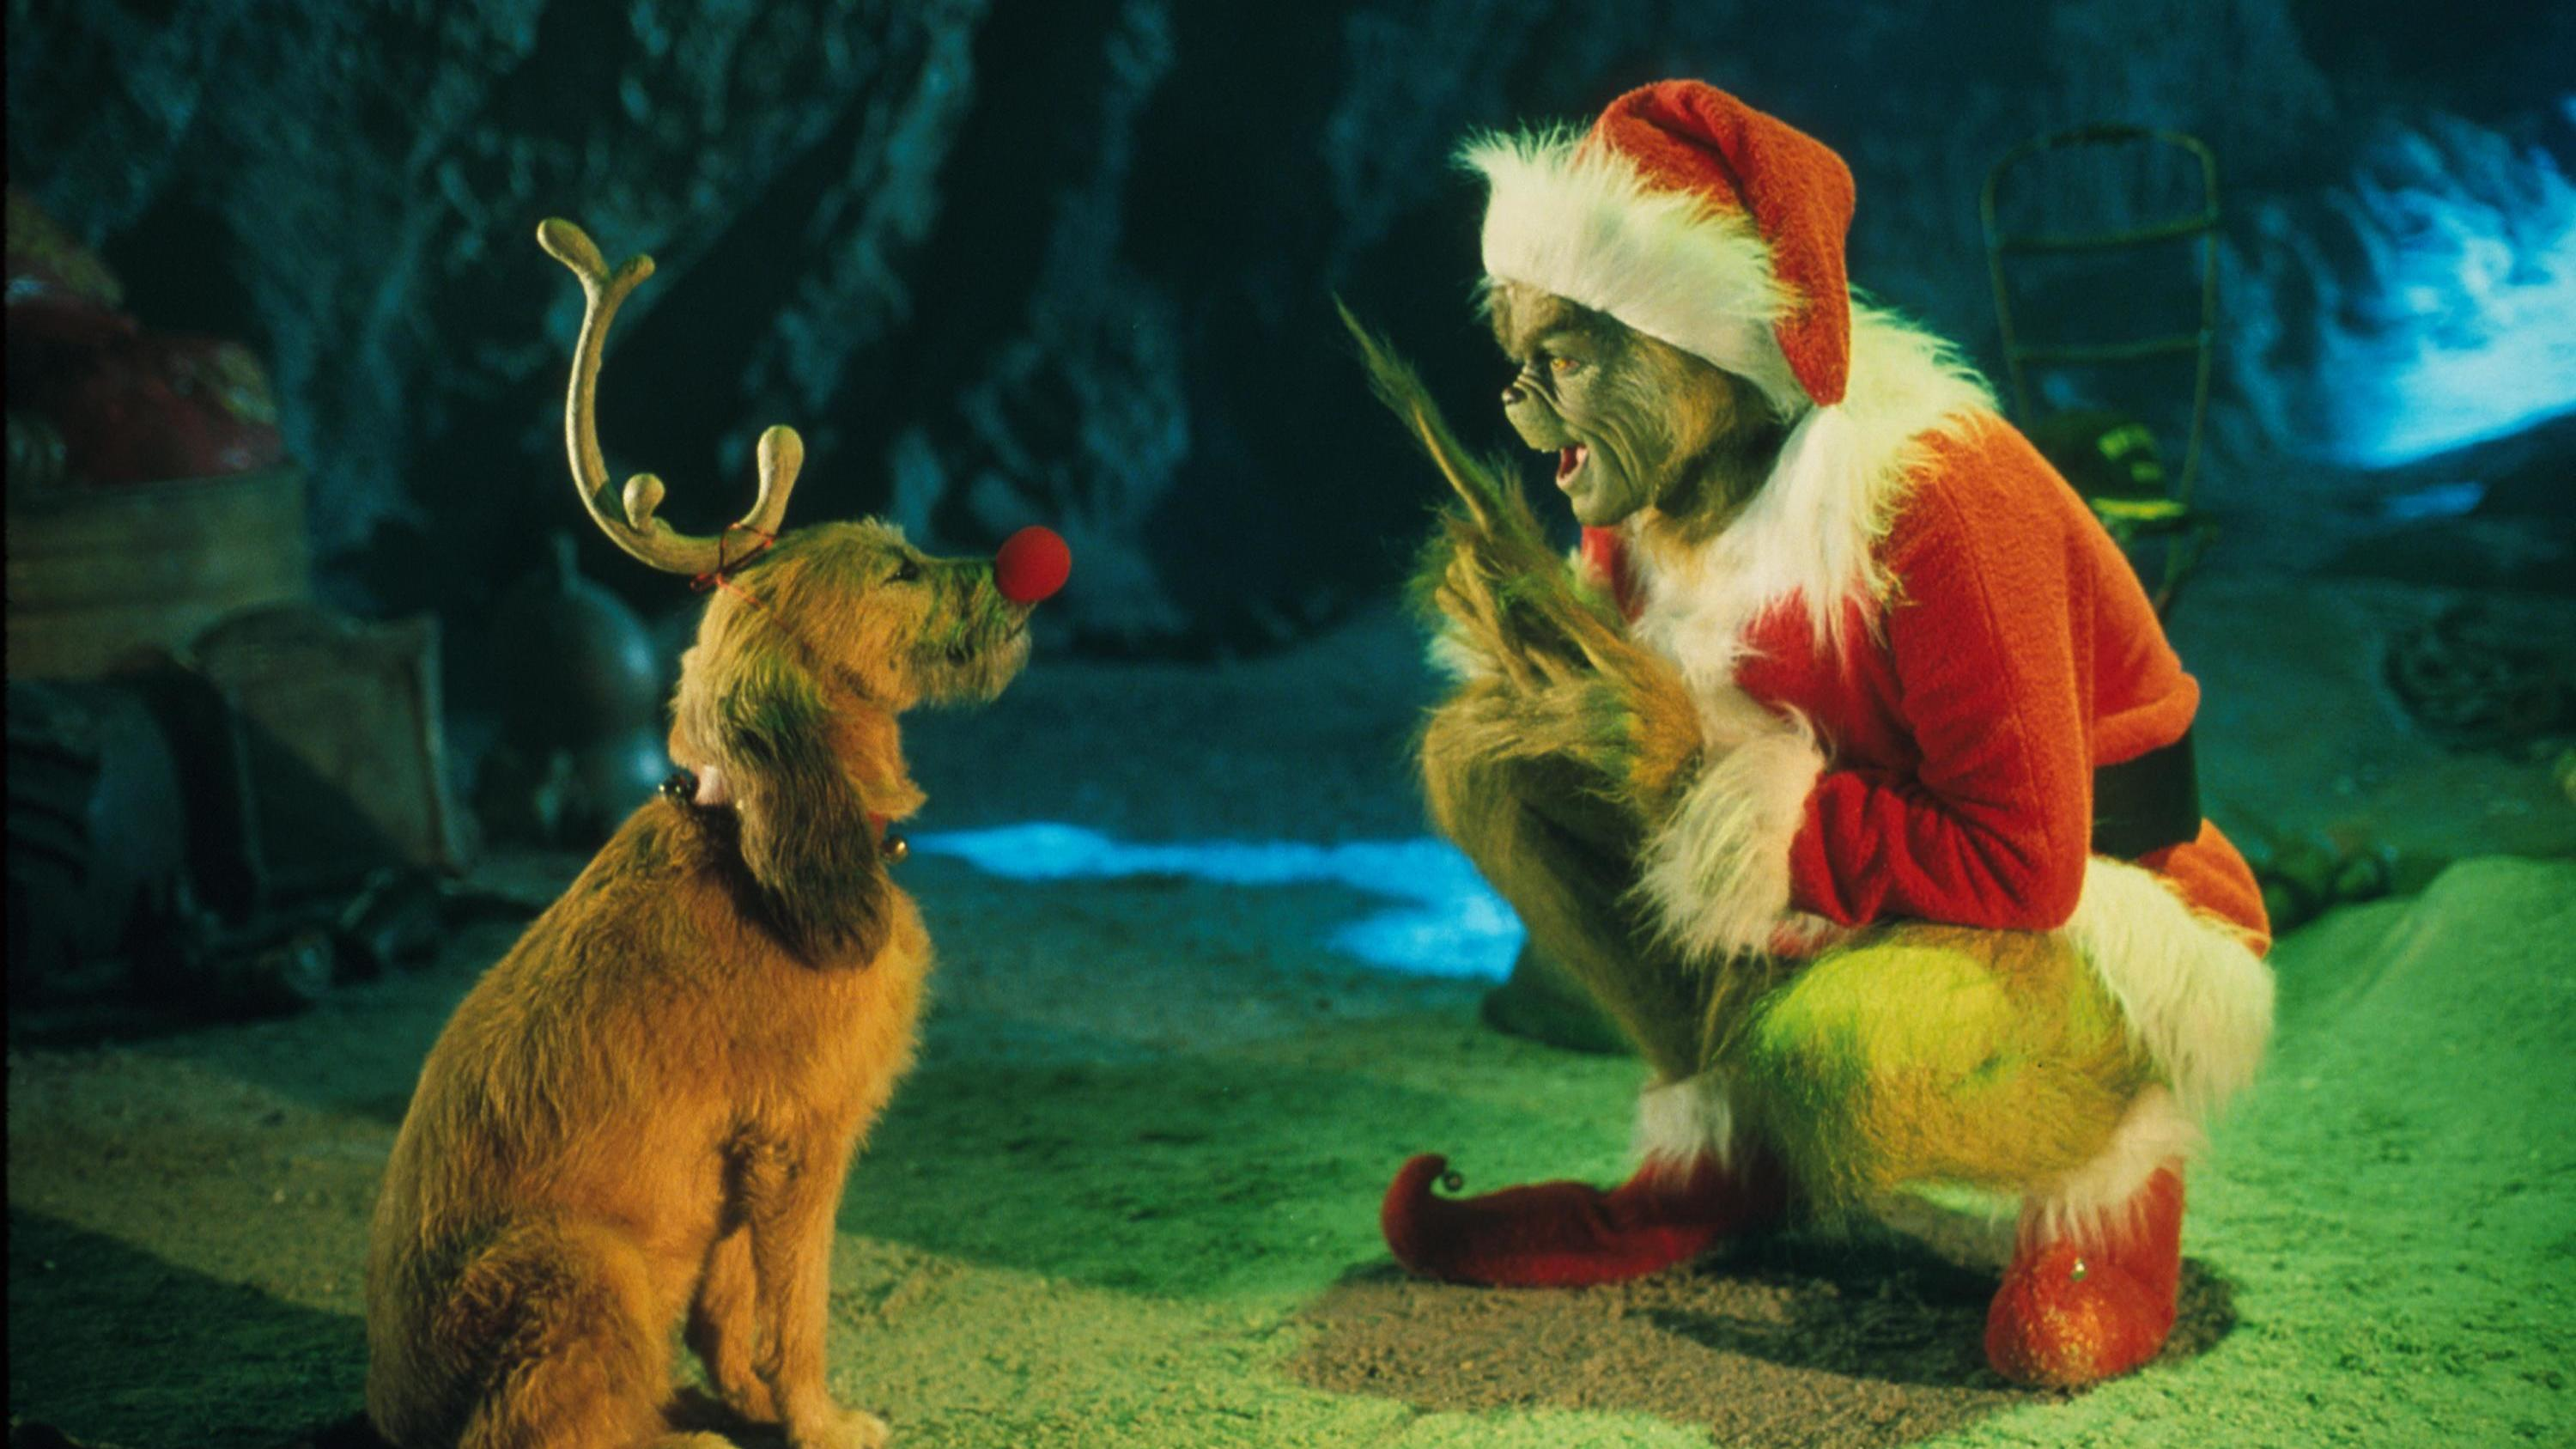 the grinch played by jim carrey conspires with his dog max to deprive the - How The Grinch Stole Christmas Jim Carrey